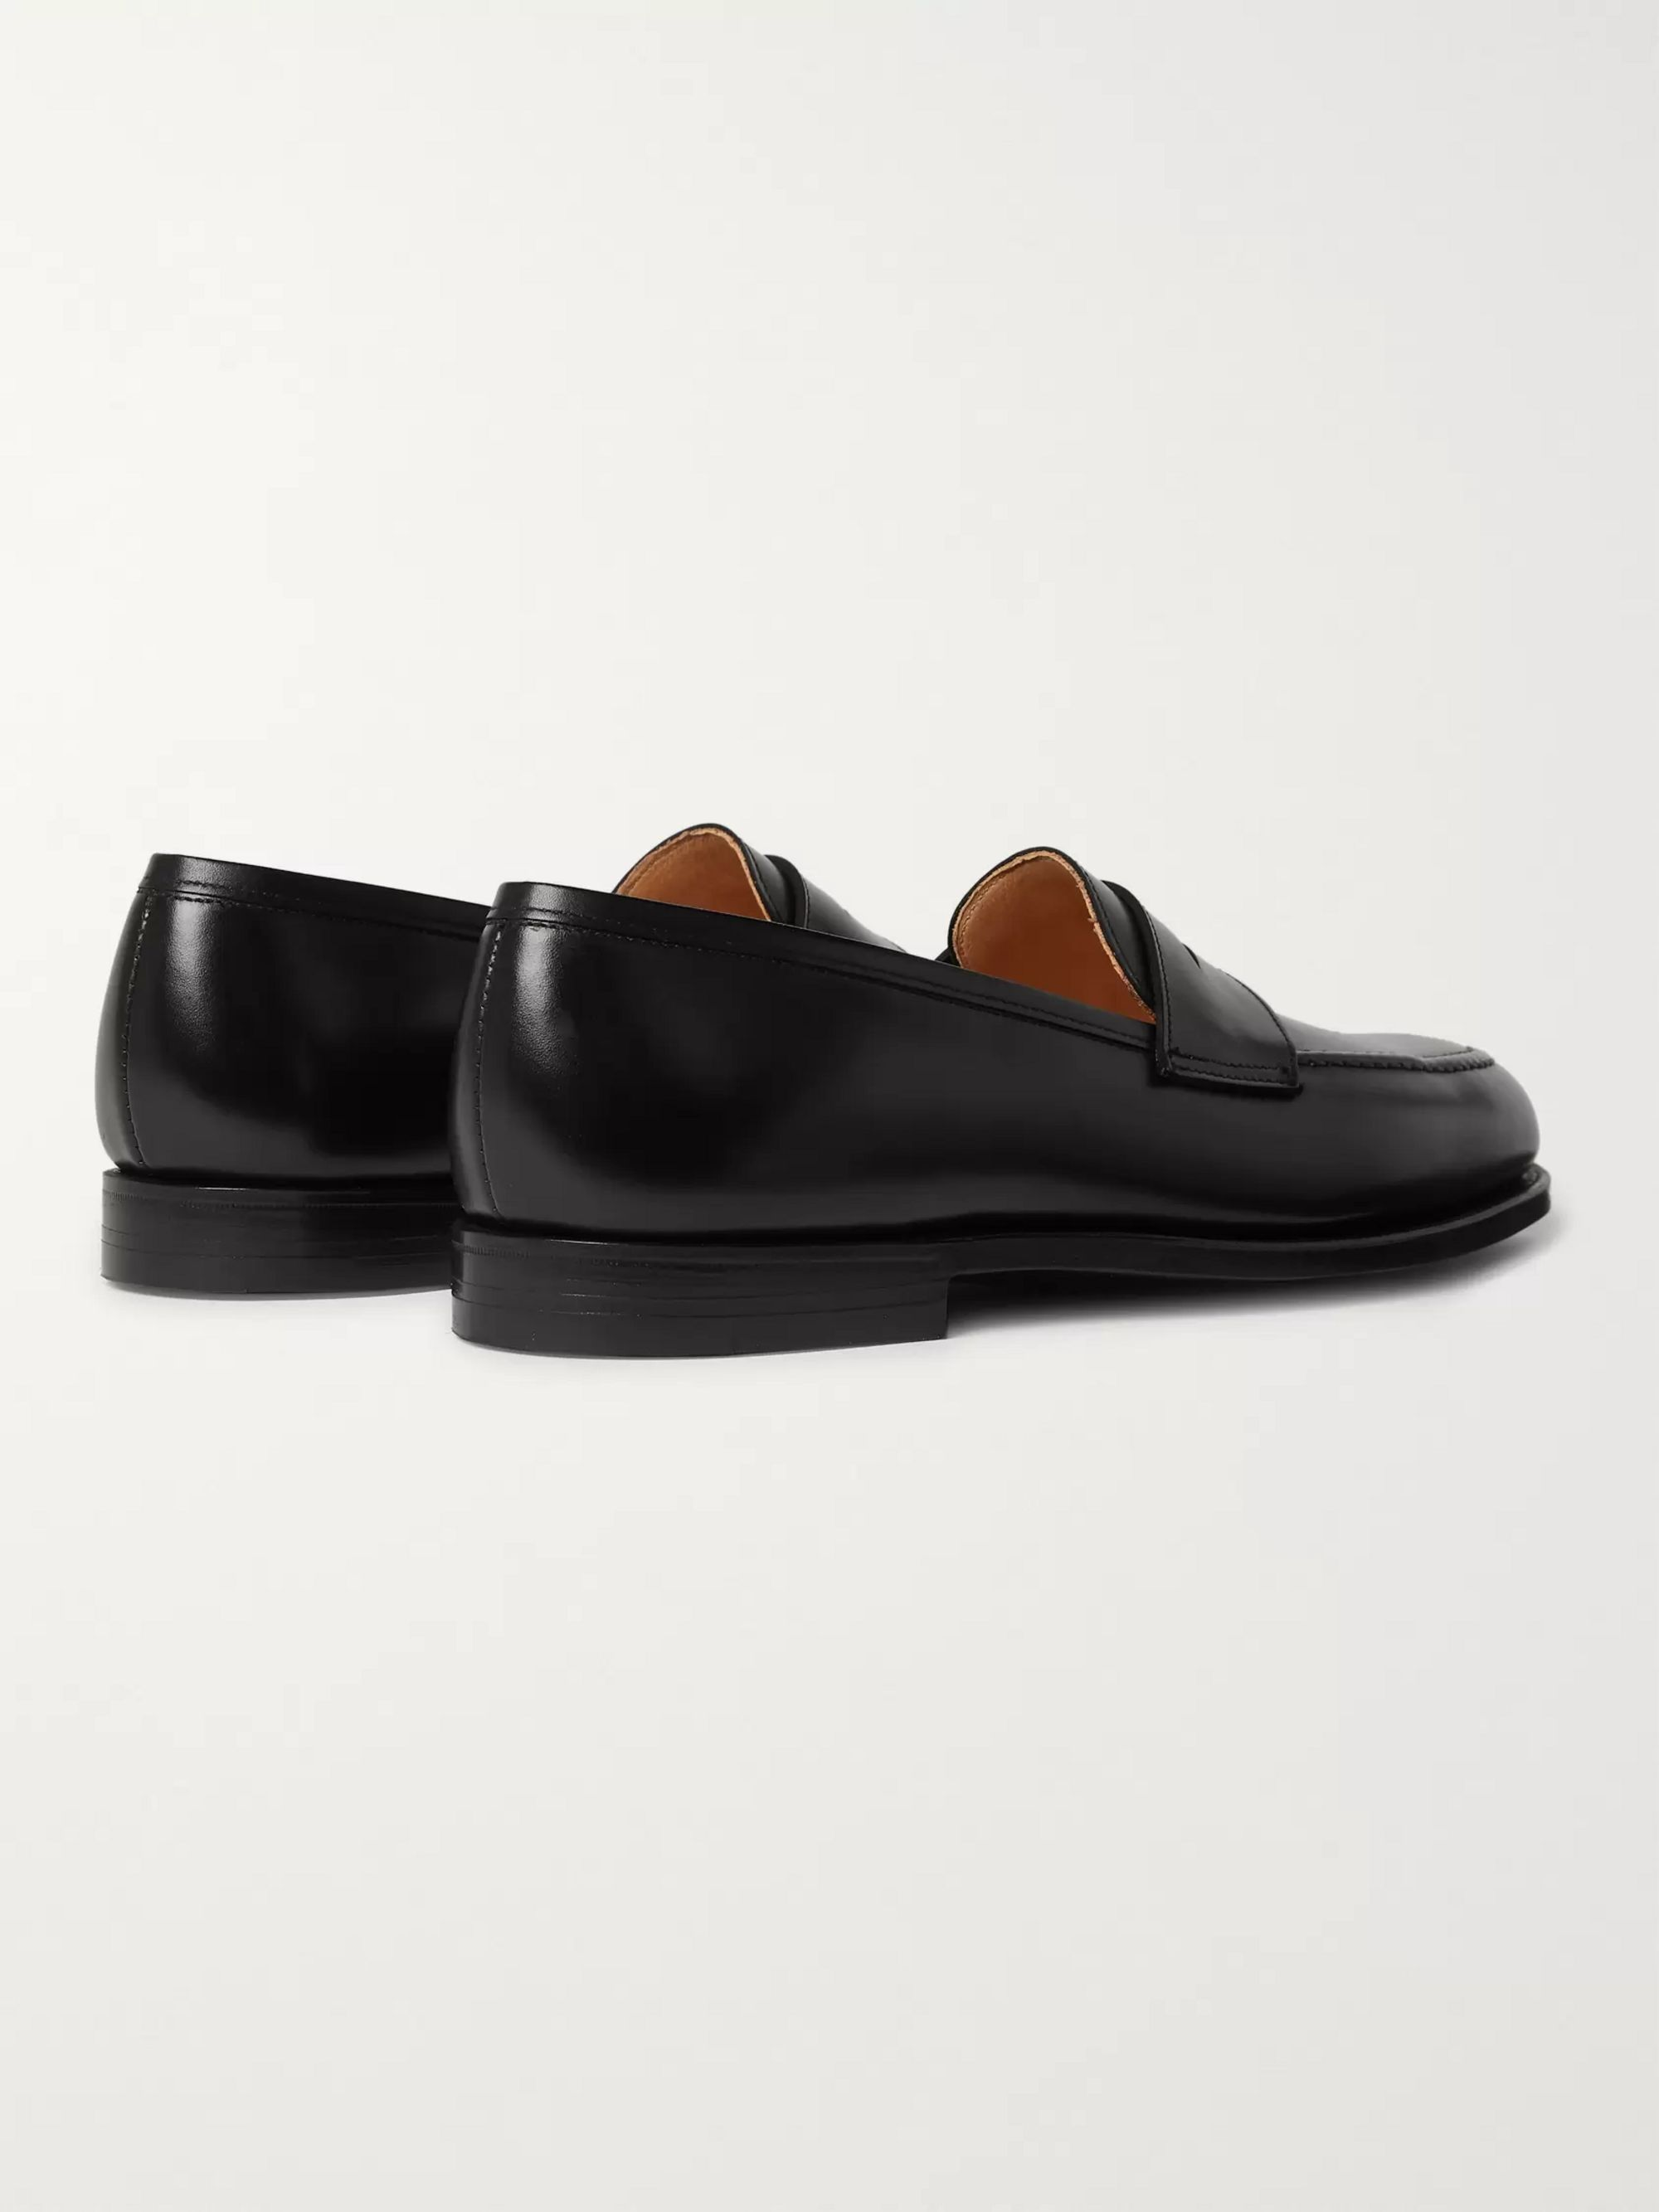 George Cleverley Bradley 2 Leather Penny Loafers